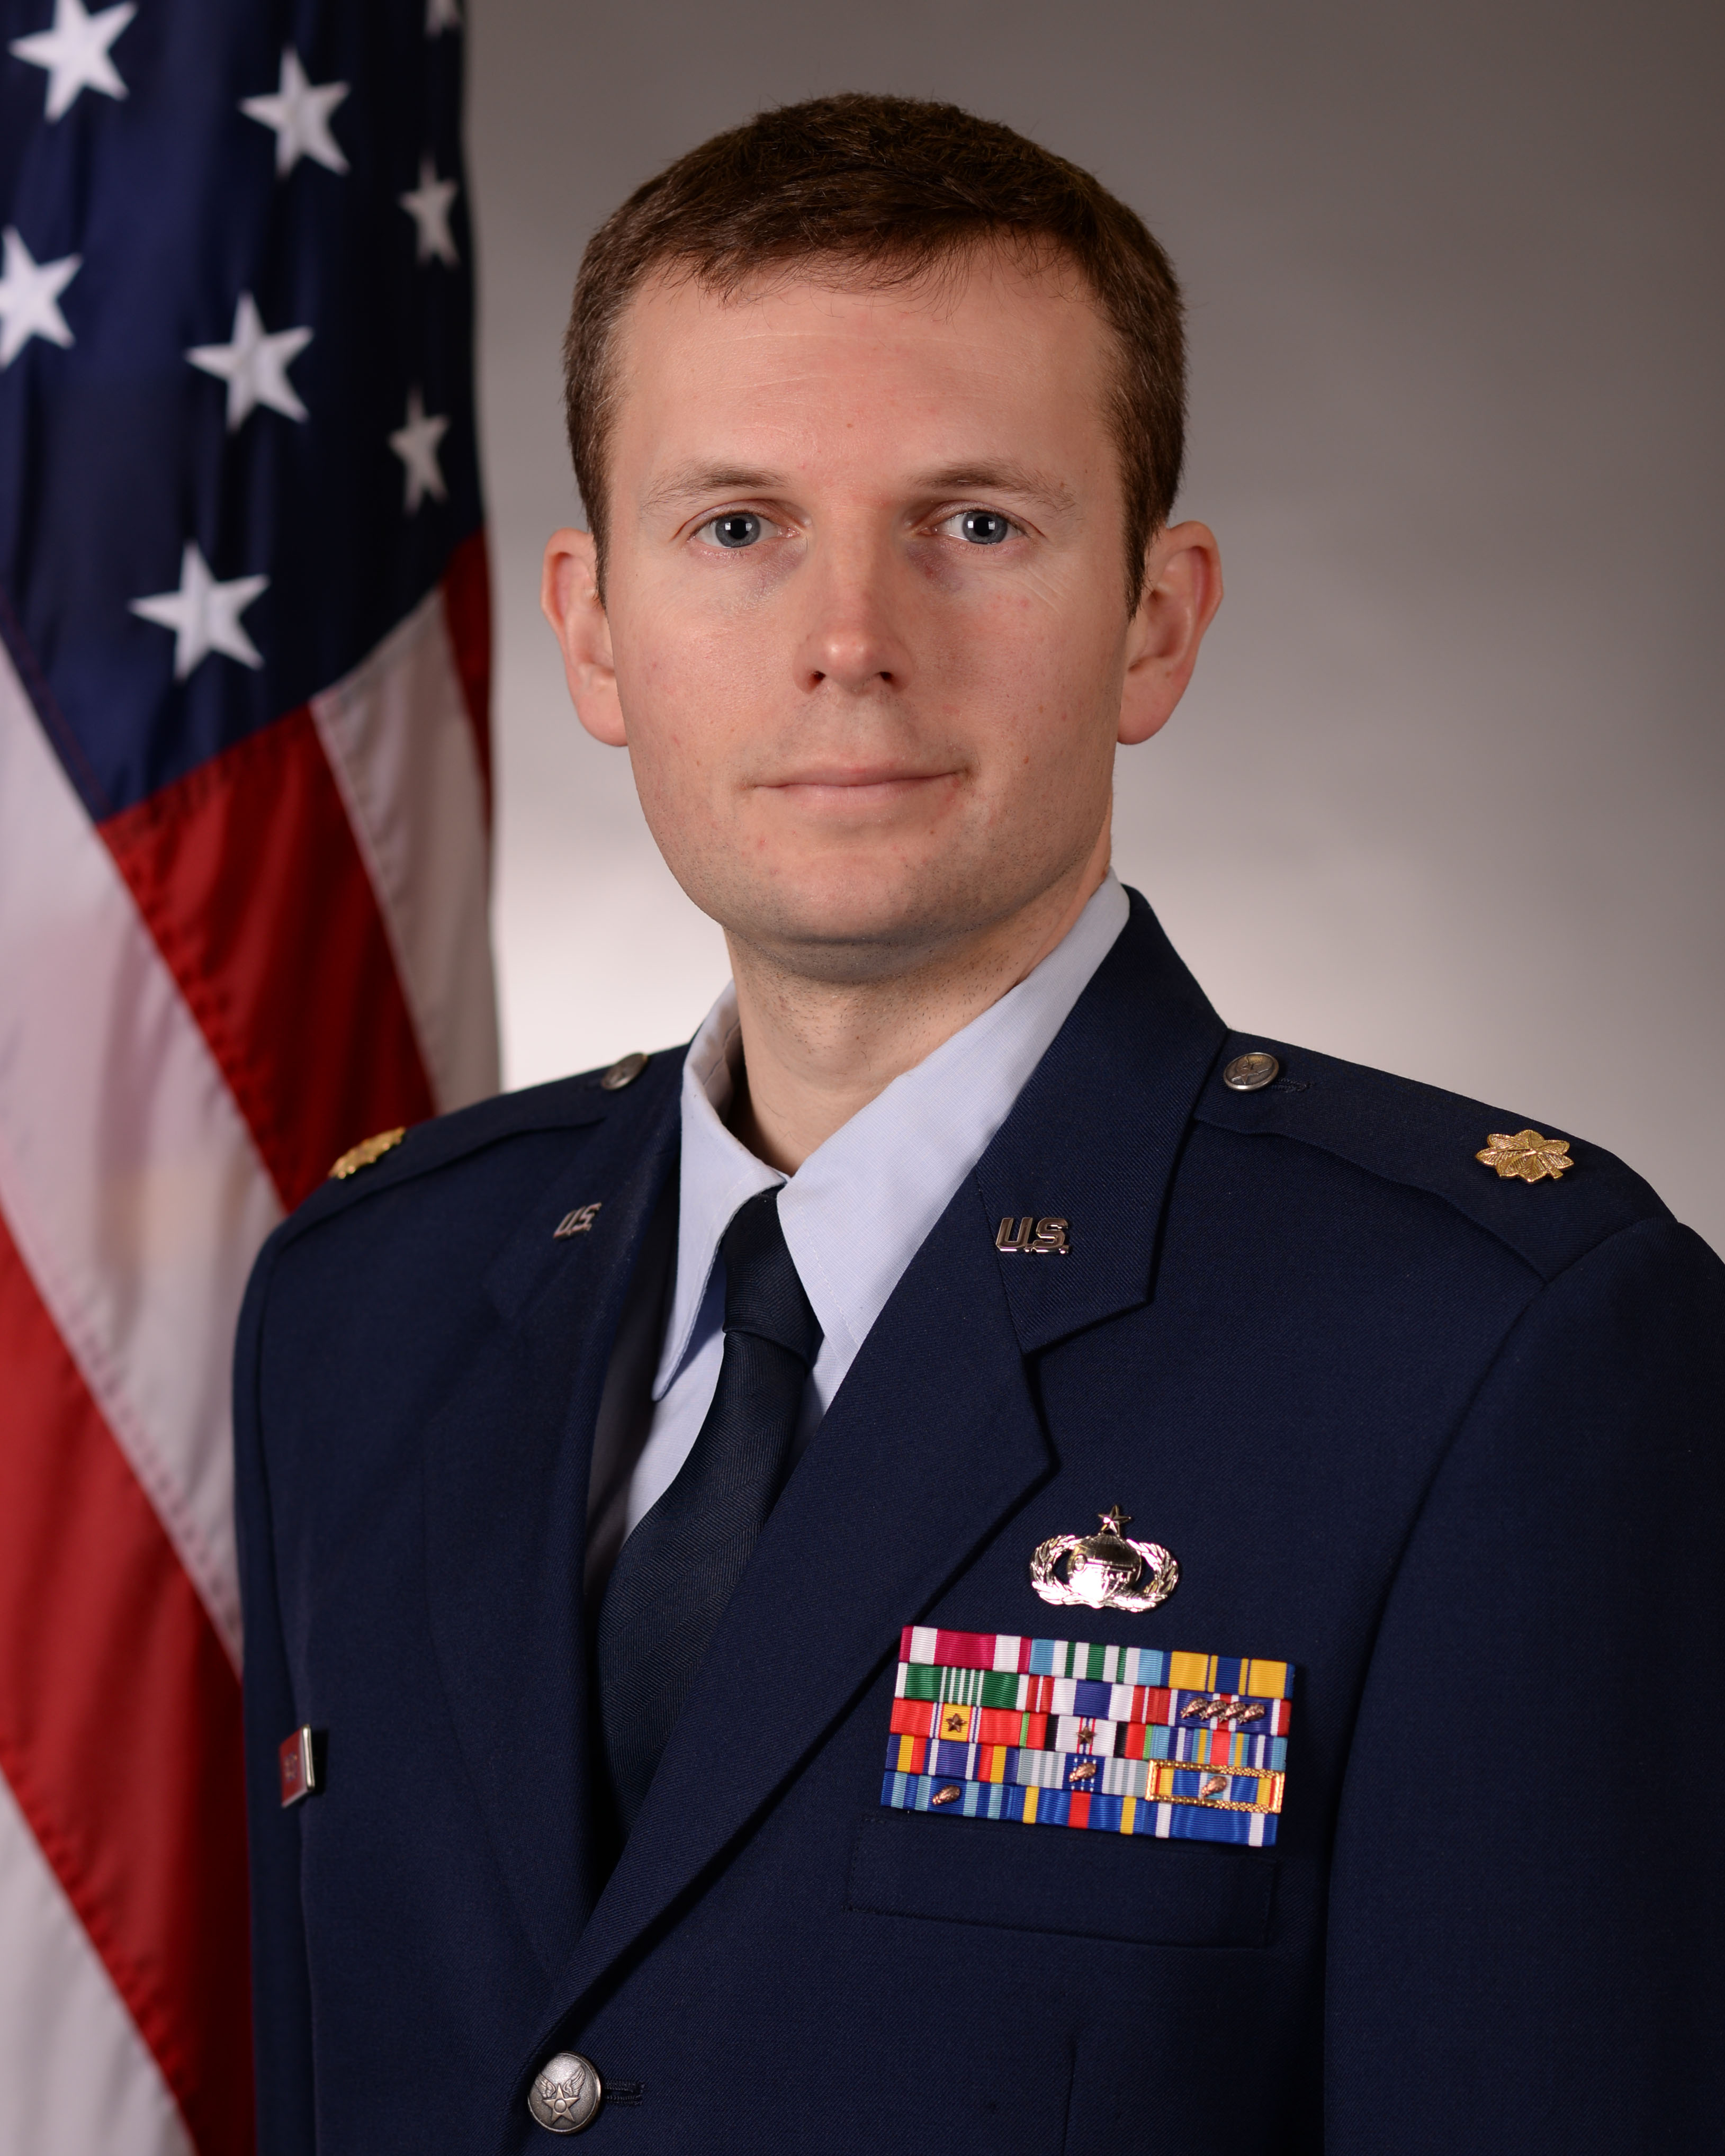 Photo of Maj John P. Biszko, USAF wear USAF service dress uniform